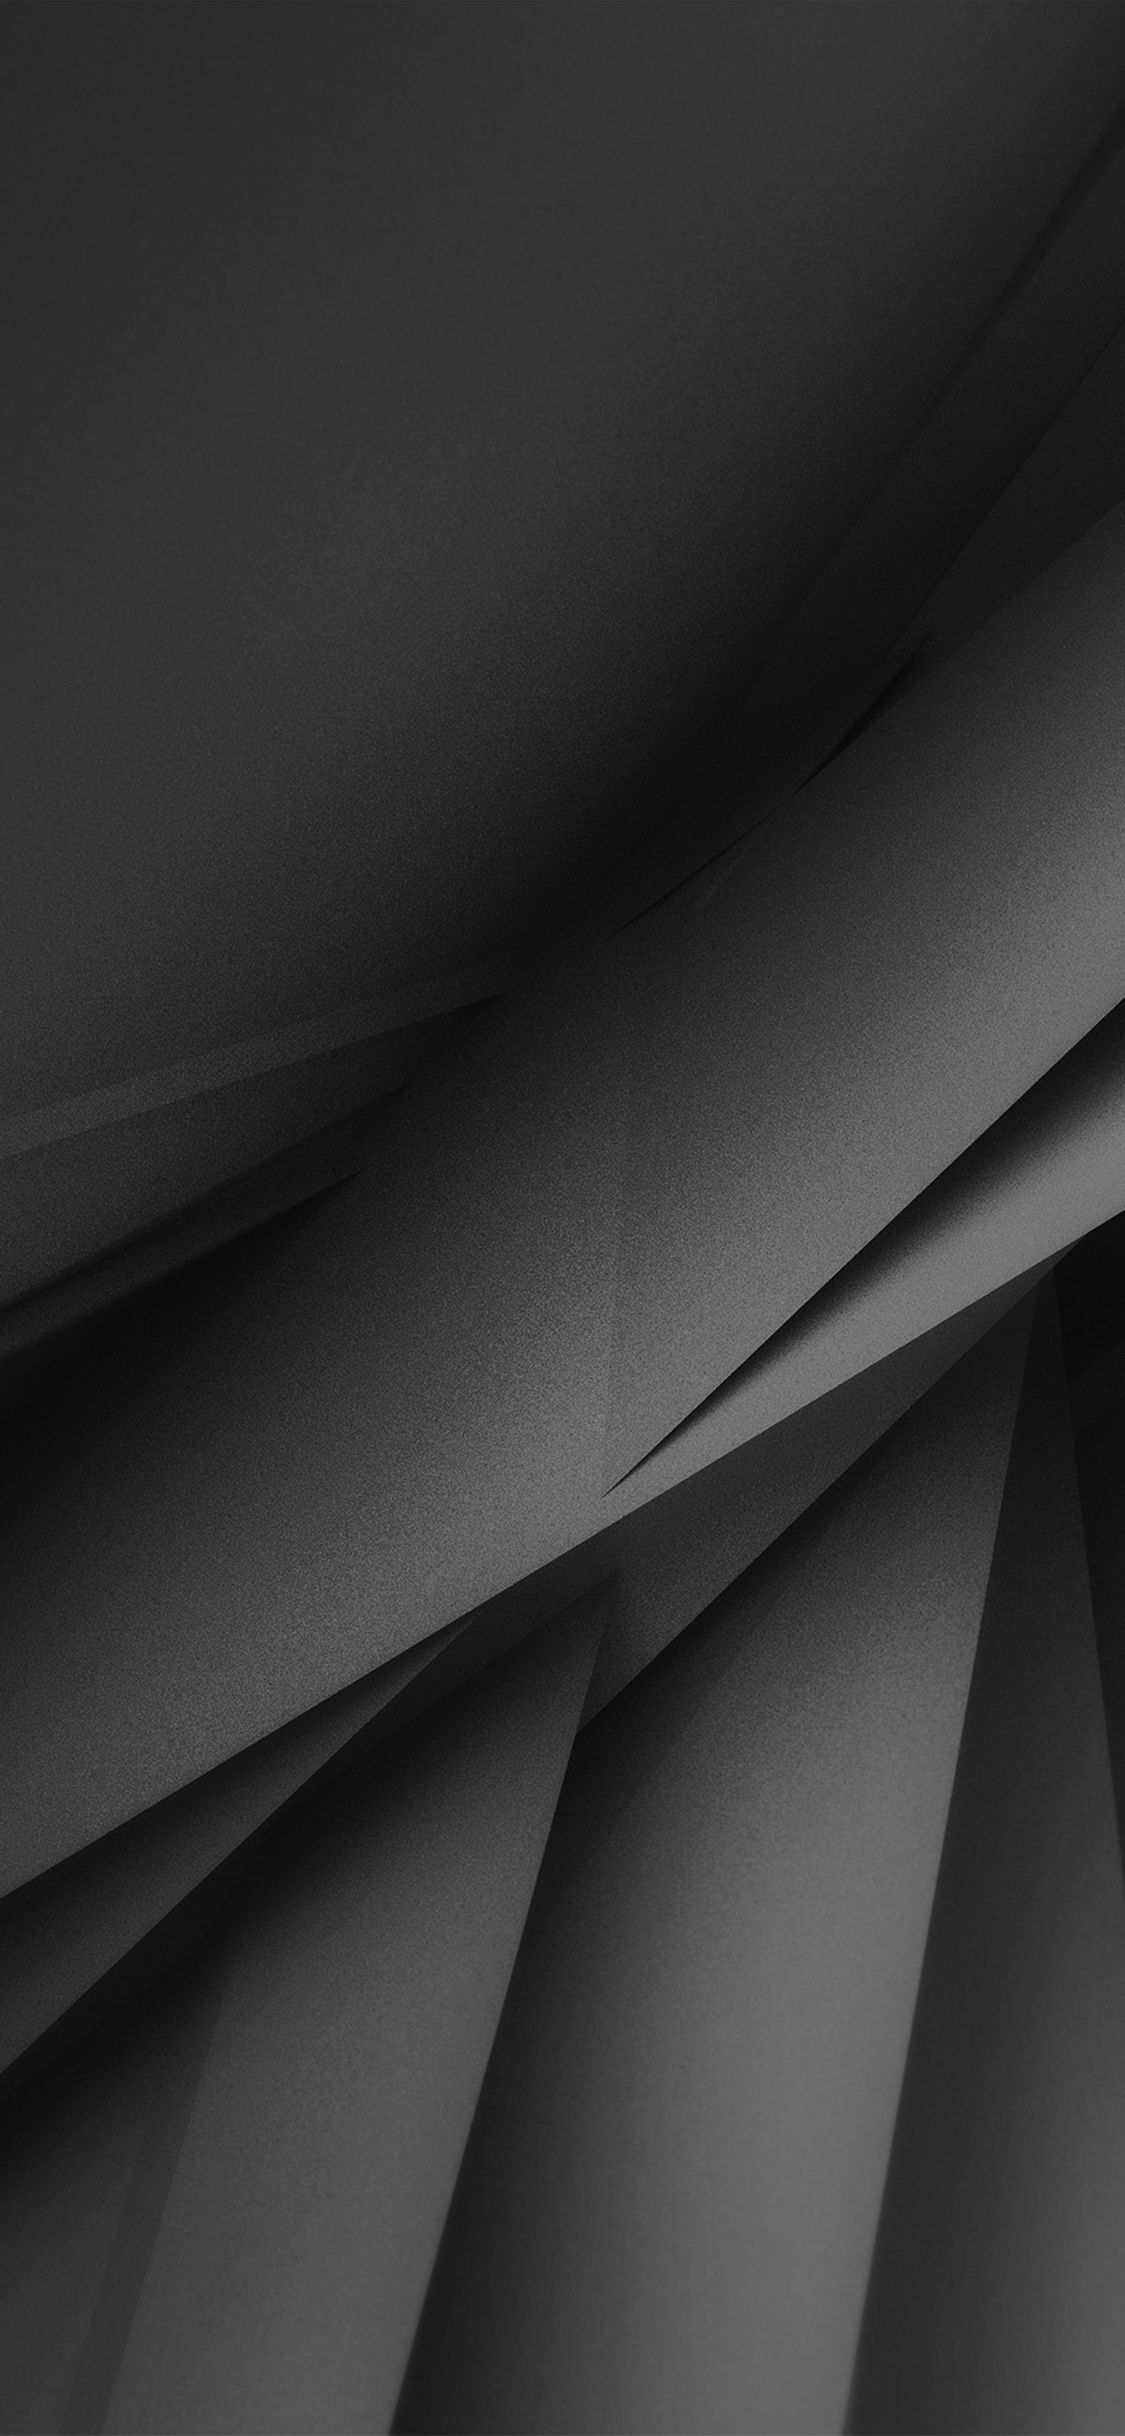 Iphonex Wallpaper Vs30 Abstract Background Line Shape Gray